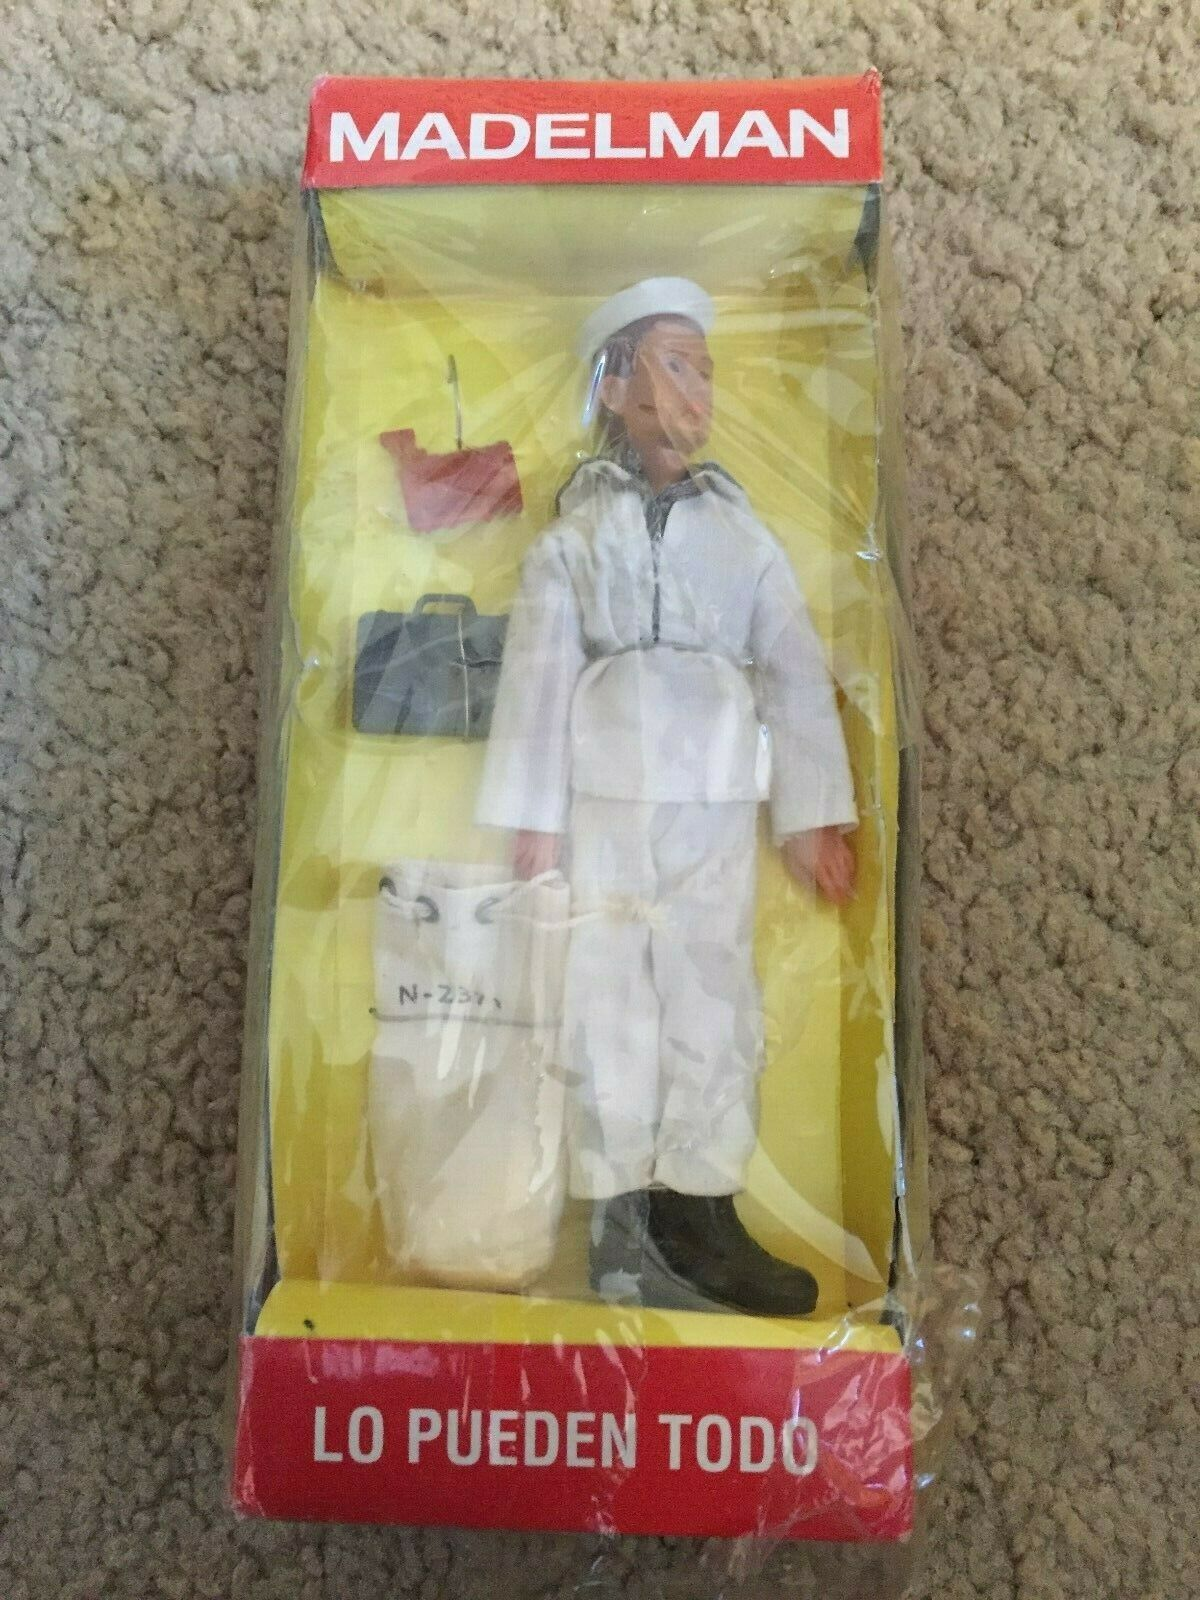 MADELMAN Espagne 6.5 in (environ 16.51 cm) Tall Navy figure-Comme neuf in box-rare